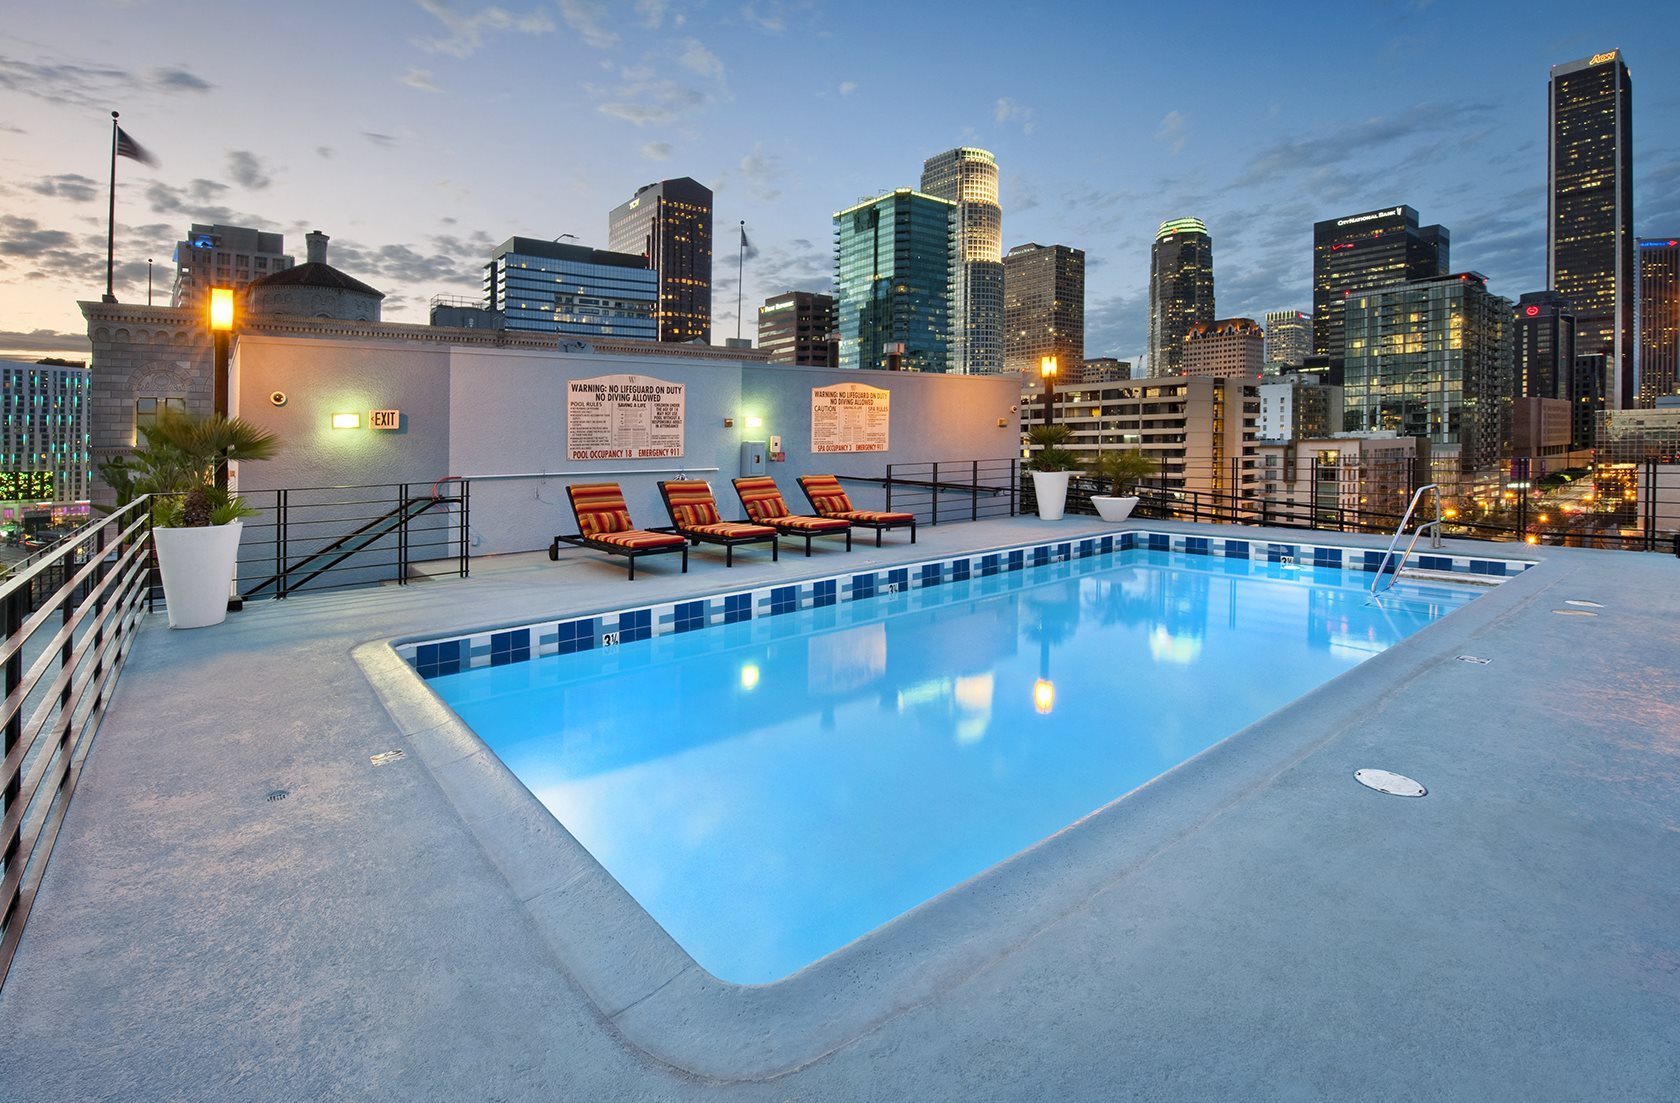 Rooftop Sundeck with Pool and Spa at Renaissance Tower, 501 W. Olympic Boulevard, CA 90015